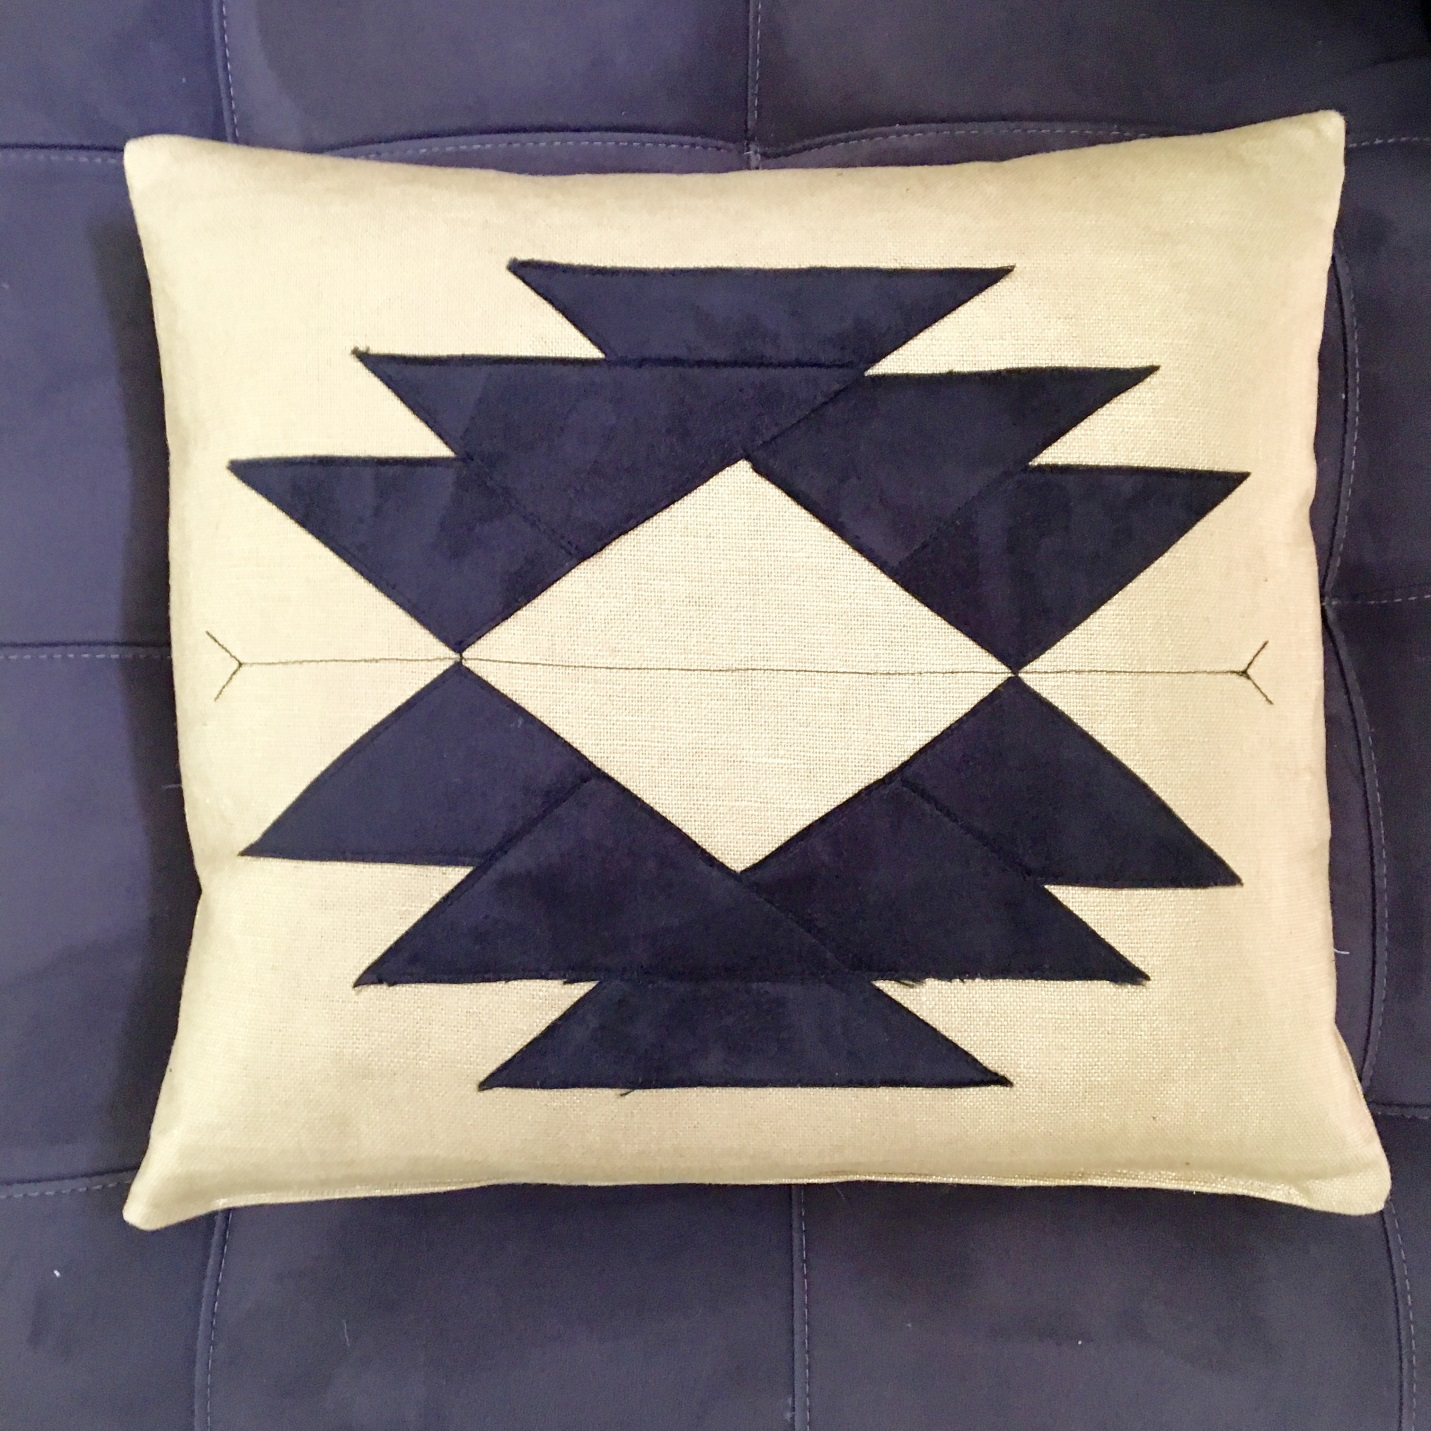 Patch Piece Pillows